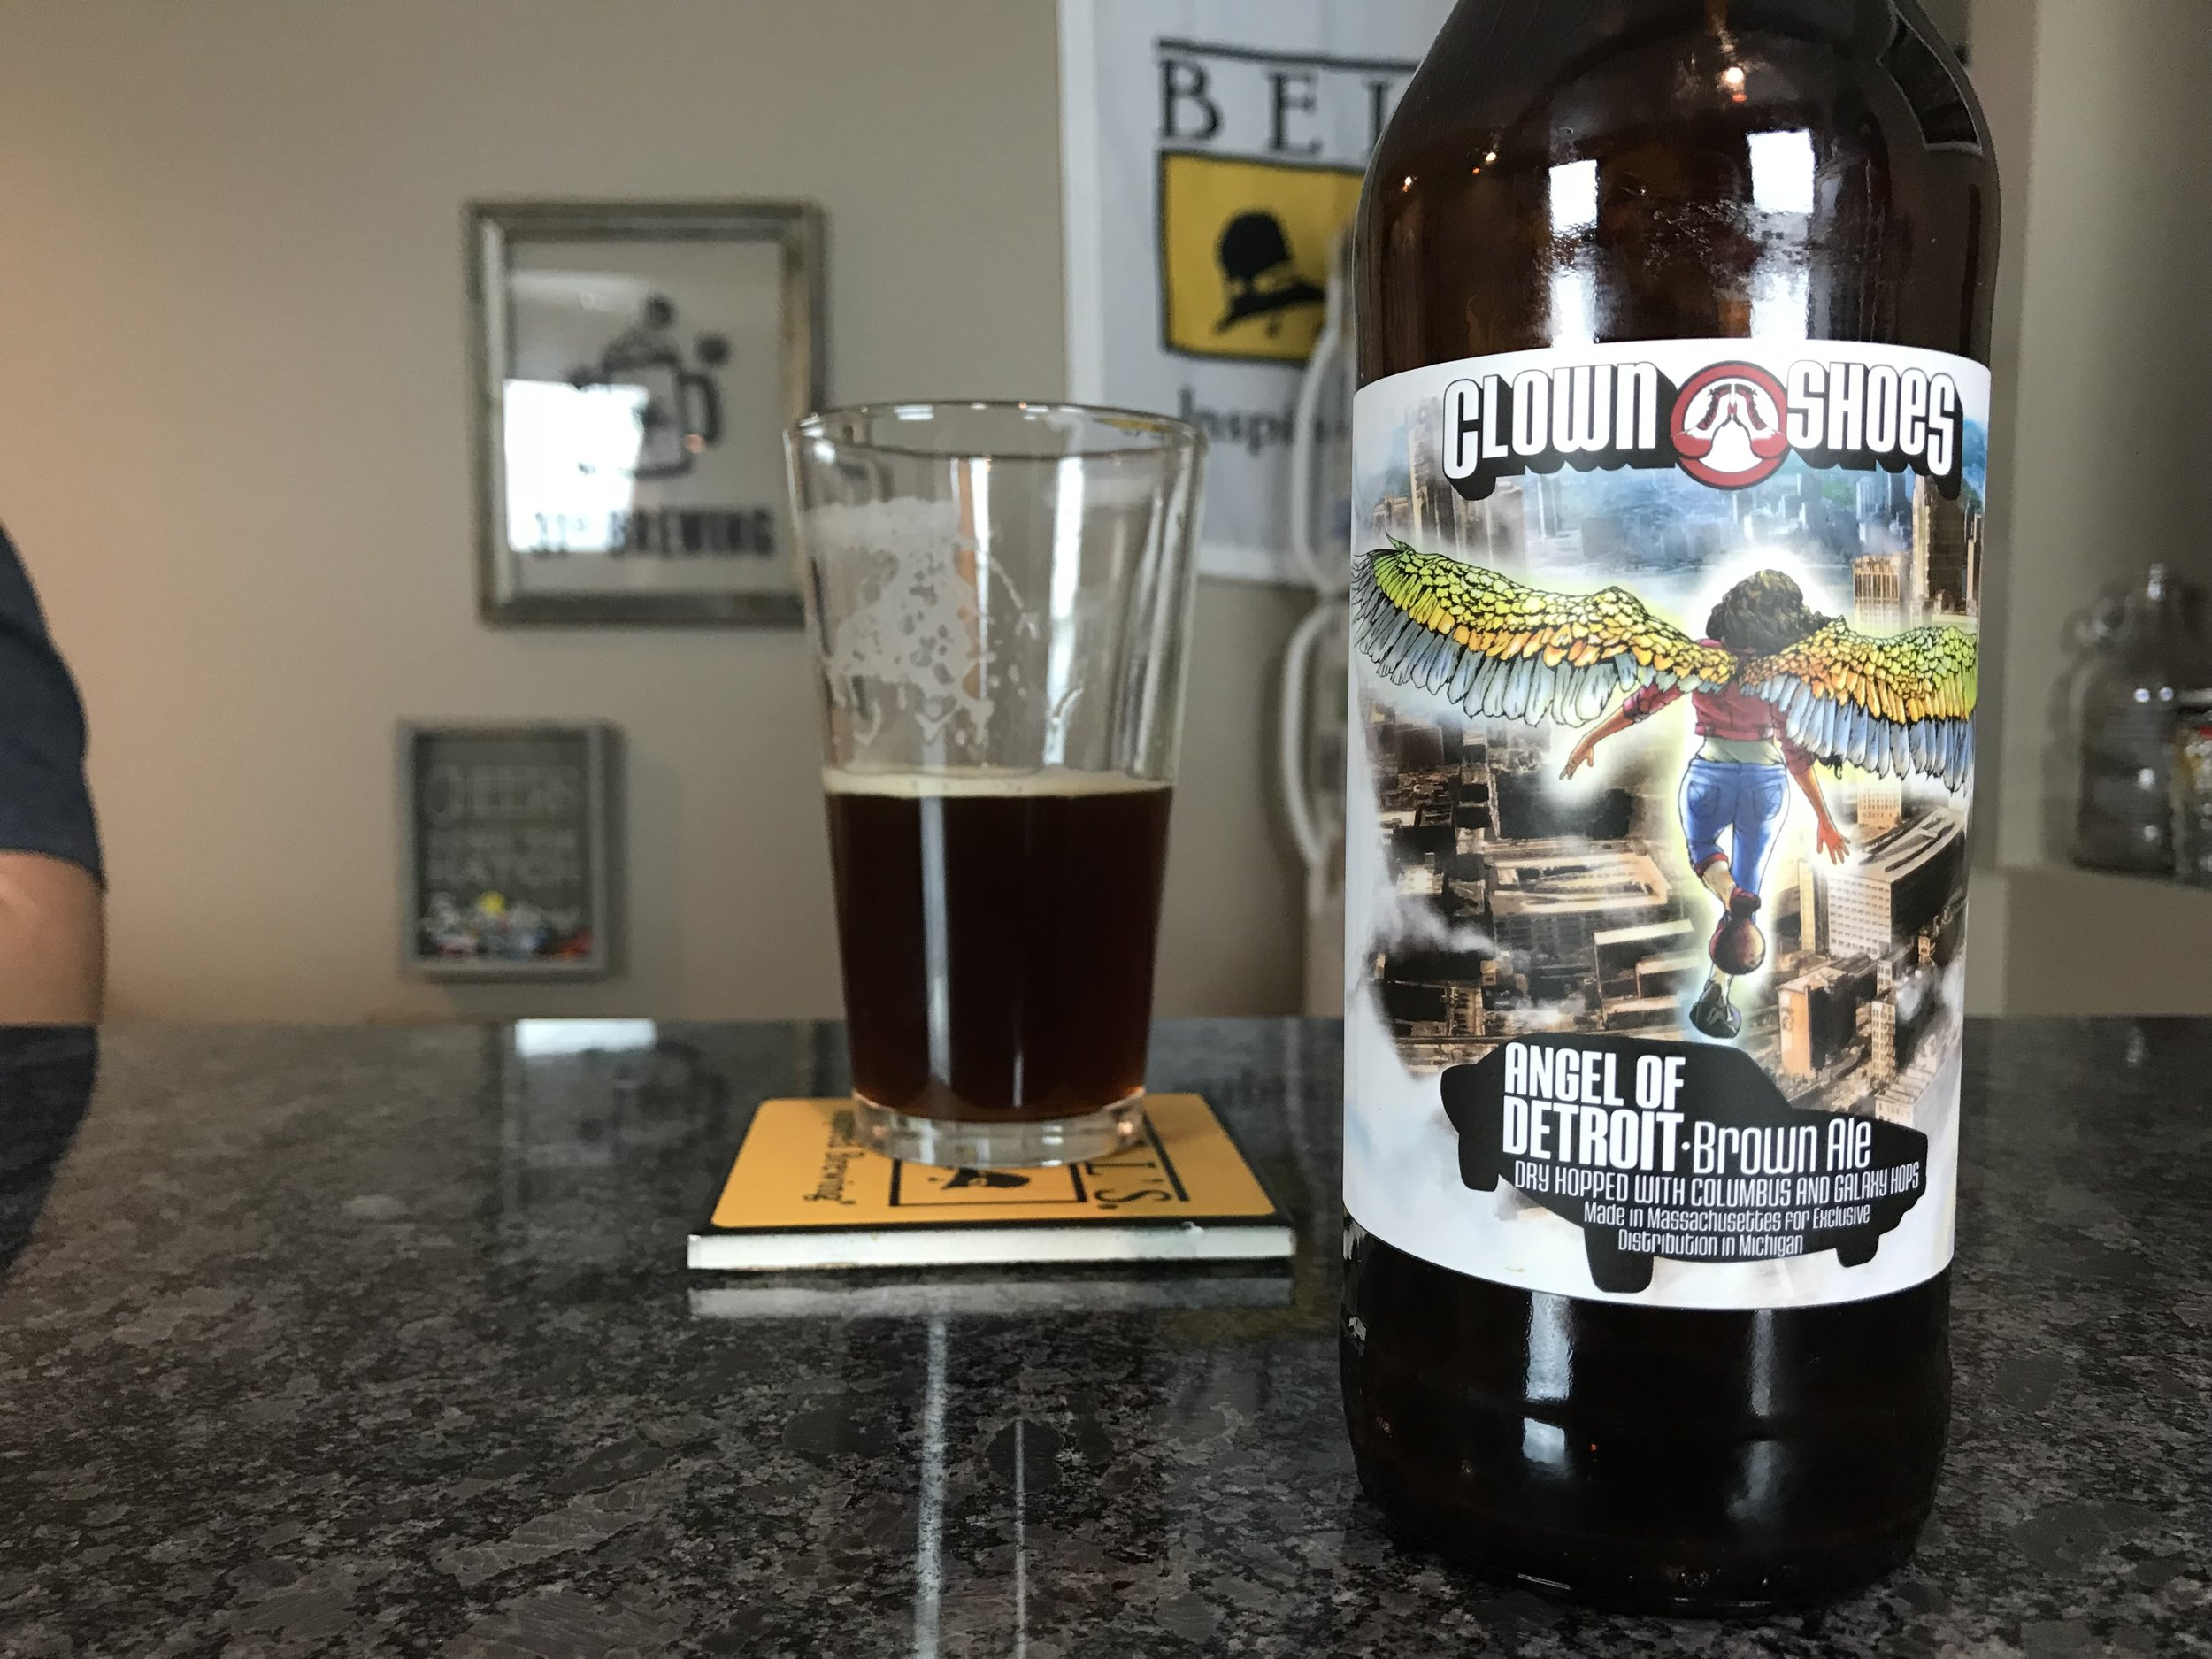 Angel of Detroit 9% ABV - Want to see the Video review? Click on the image.